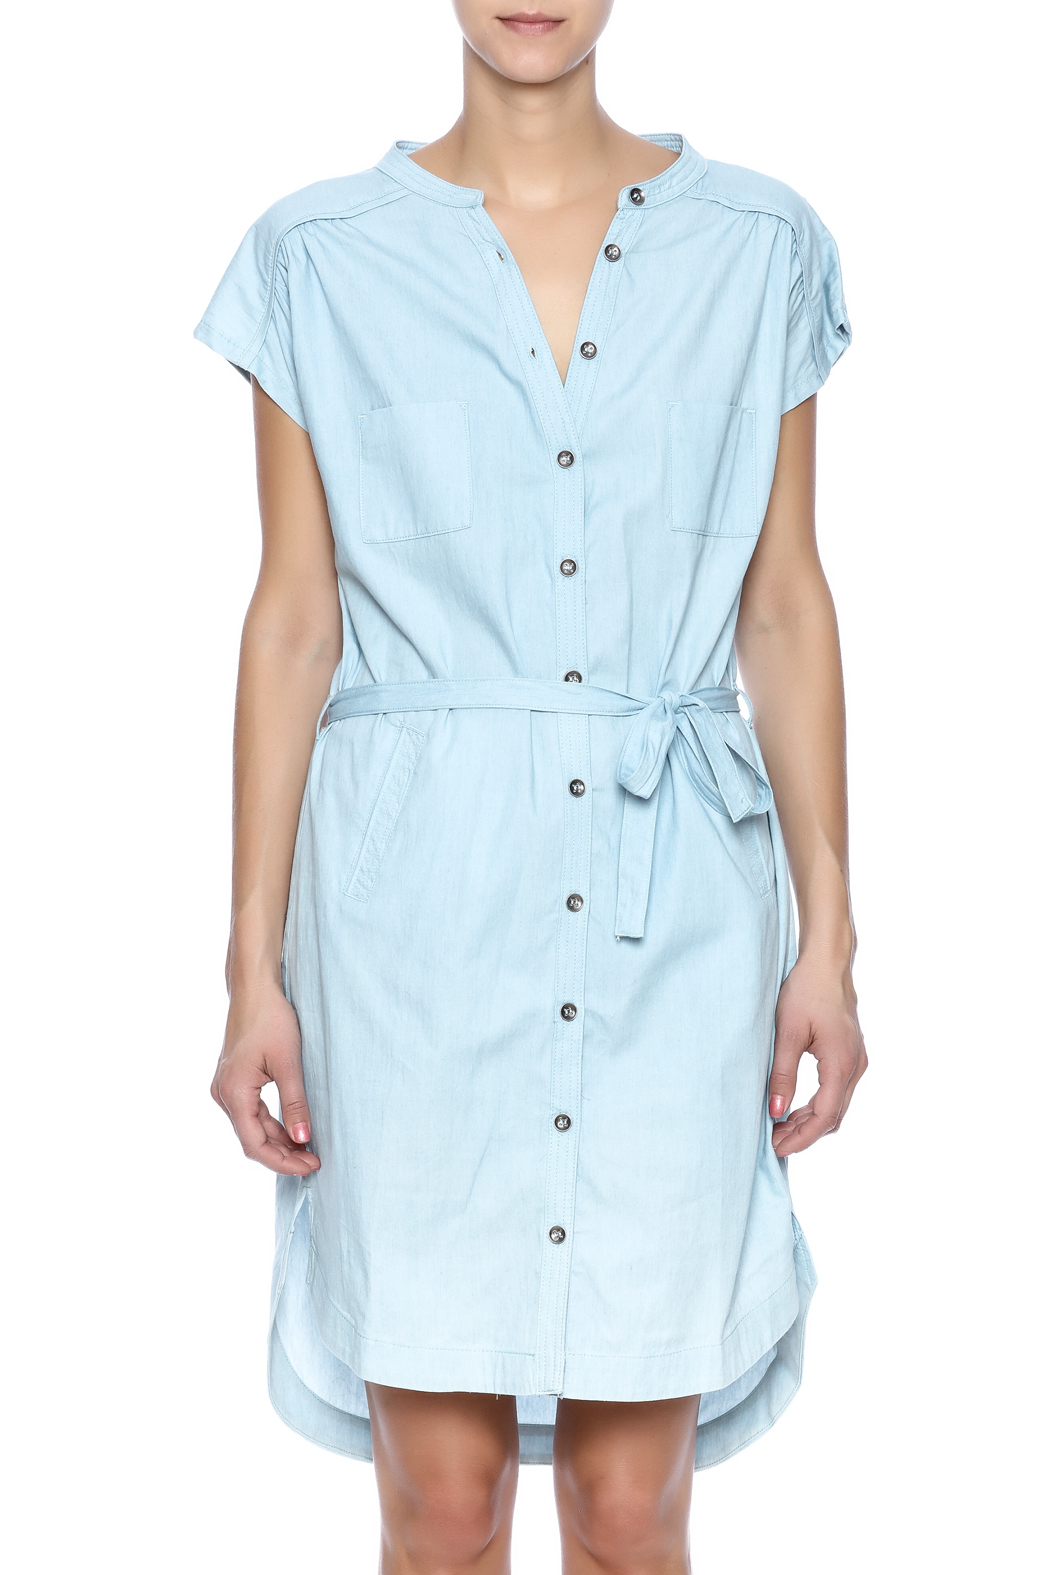 Pink Martini Casual Button Down Dress - Side Cropped Image